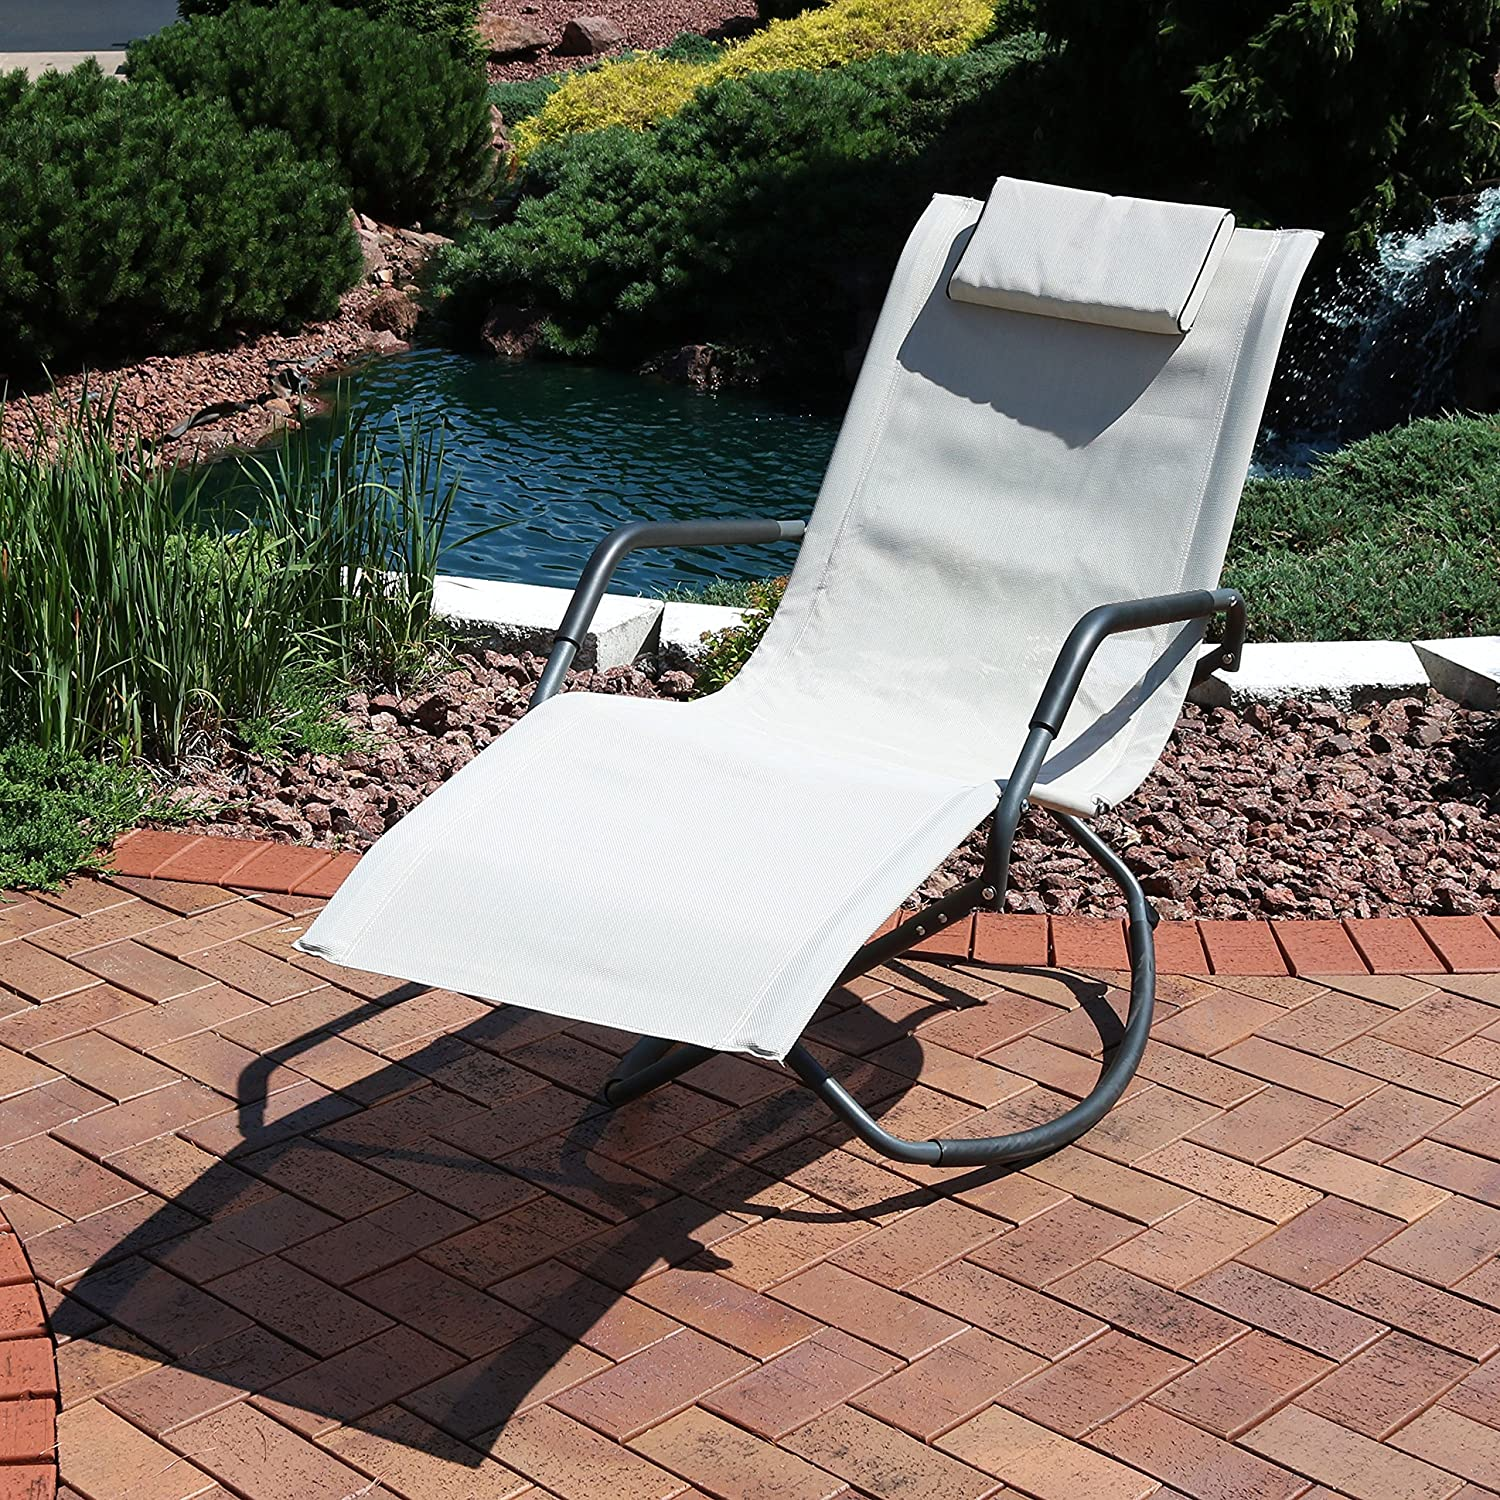 Sunnydaze Rocking Chaise Lounge Chair with Headrest Pillow, Outdoor Folding Patio Lounger, Beige